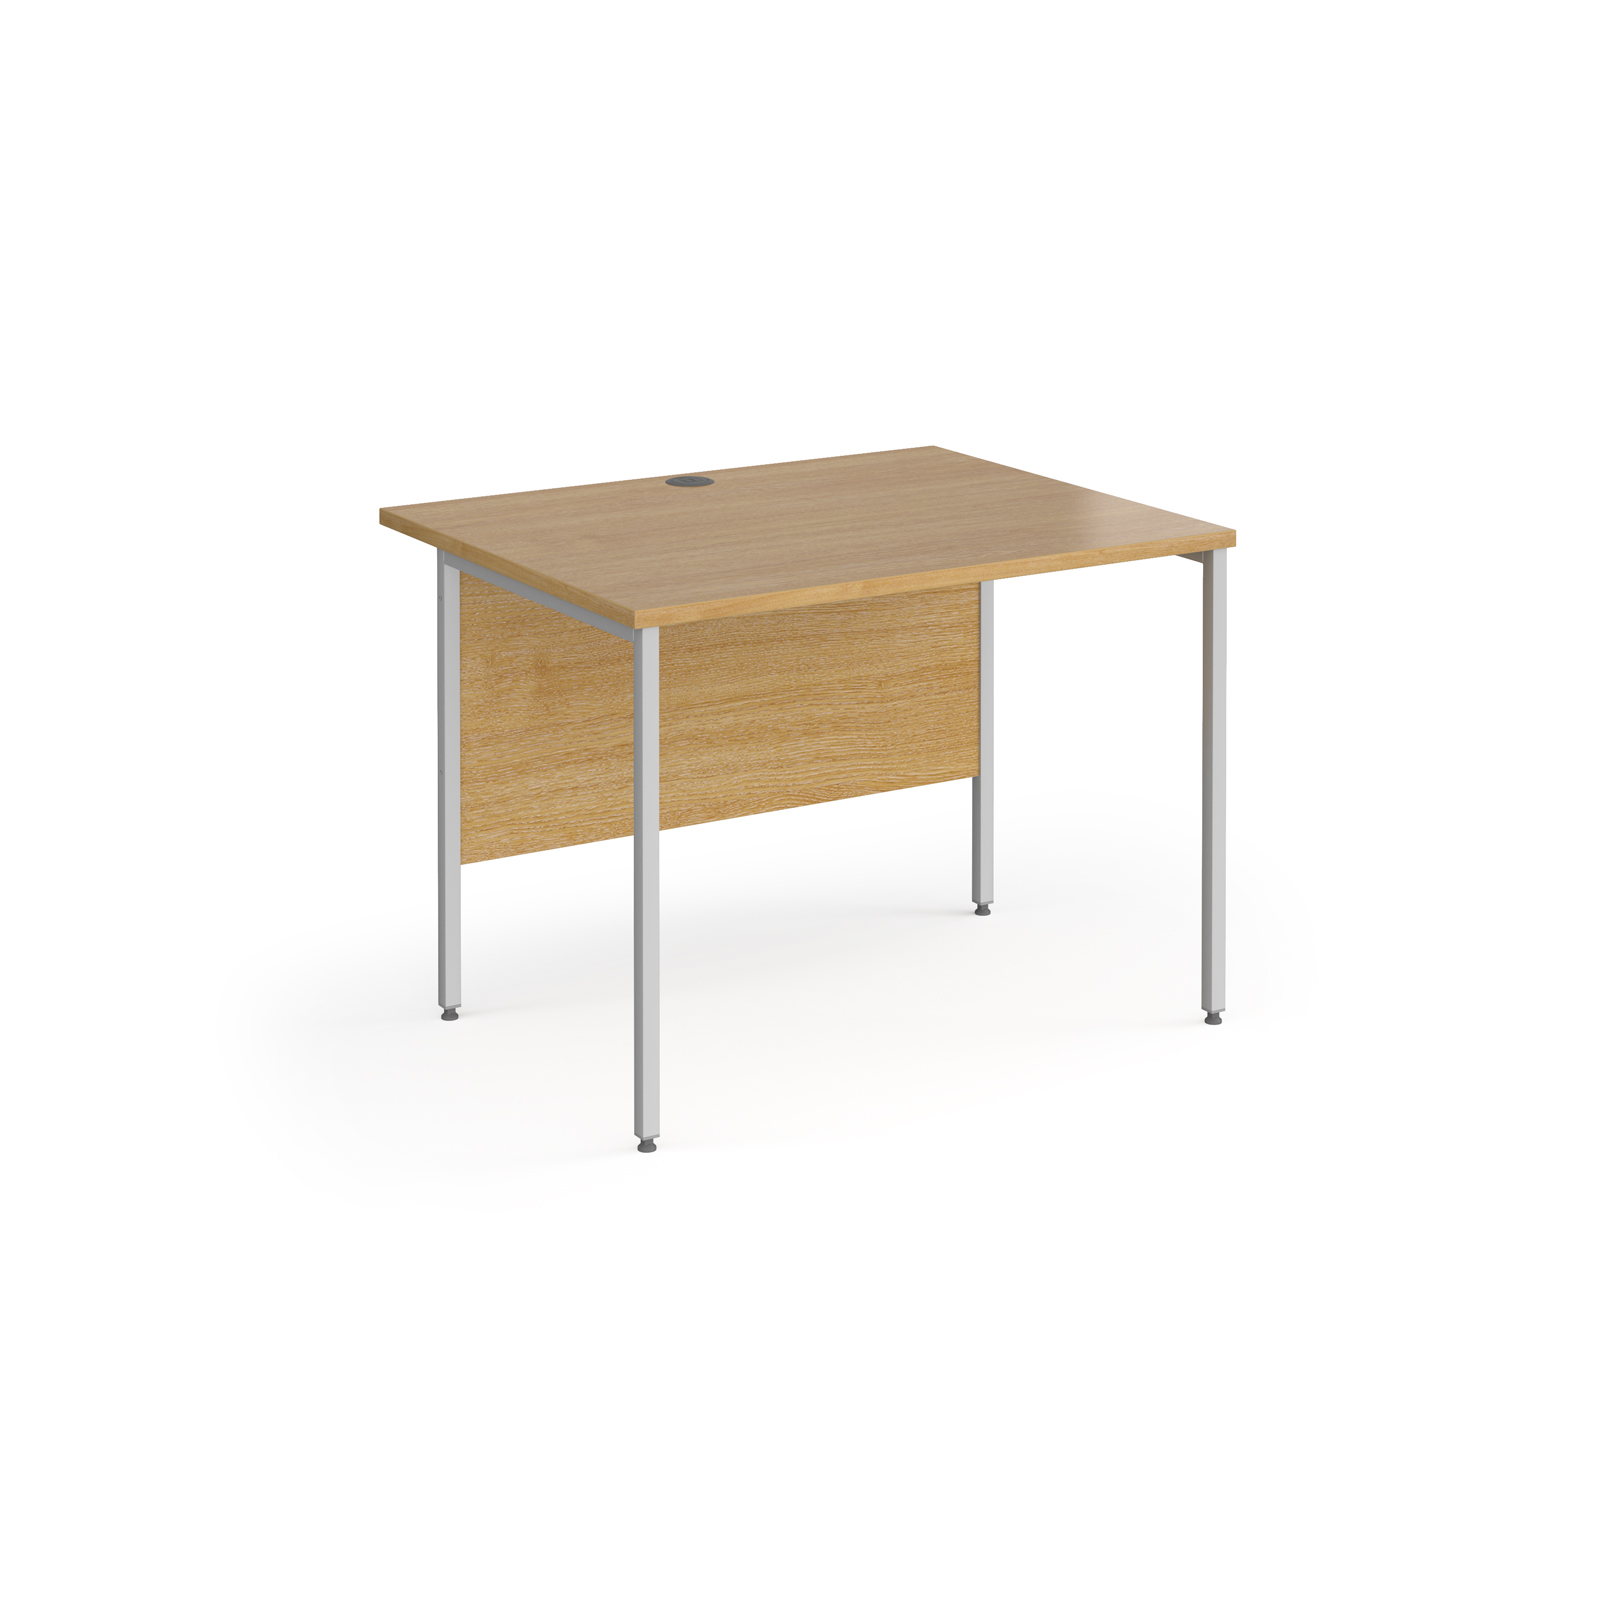 Contract 25 straight desk with silver H-Frame leg 1000mm x 800mm - oak top